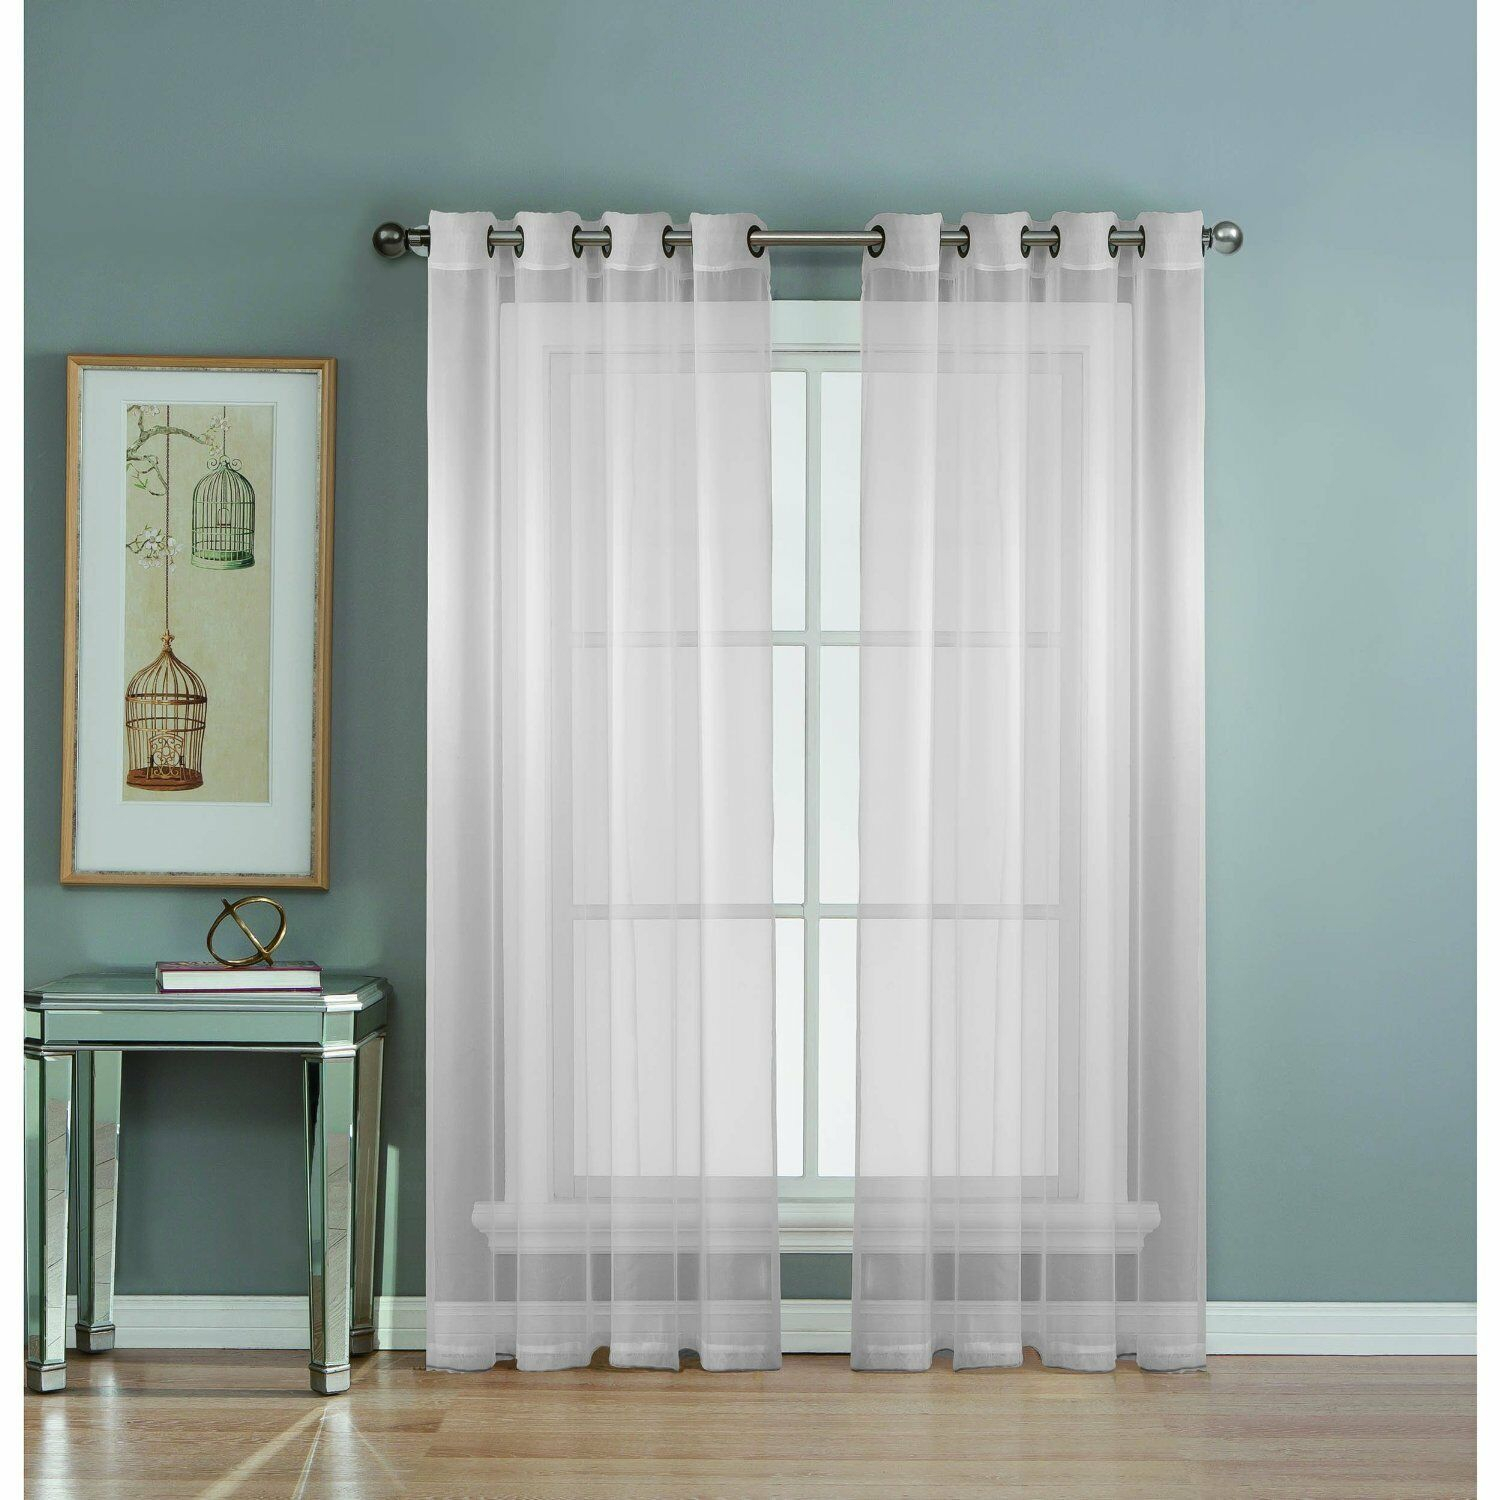 Window Elements Diamond Sheer Voile Extra Wide Grommet Curtain Panel, 56 X 90 In With Wavy Leaves Embroidered Sheer Extra Wide Grommet Curtain Panels (View 7 of 30)